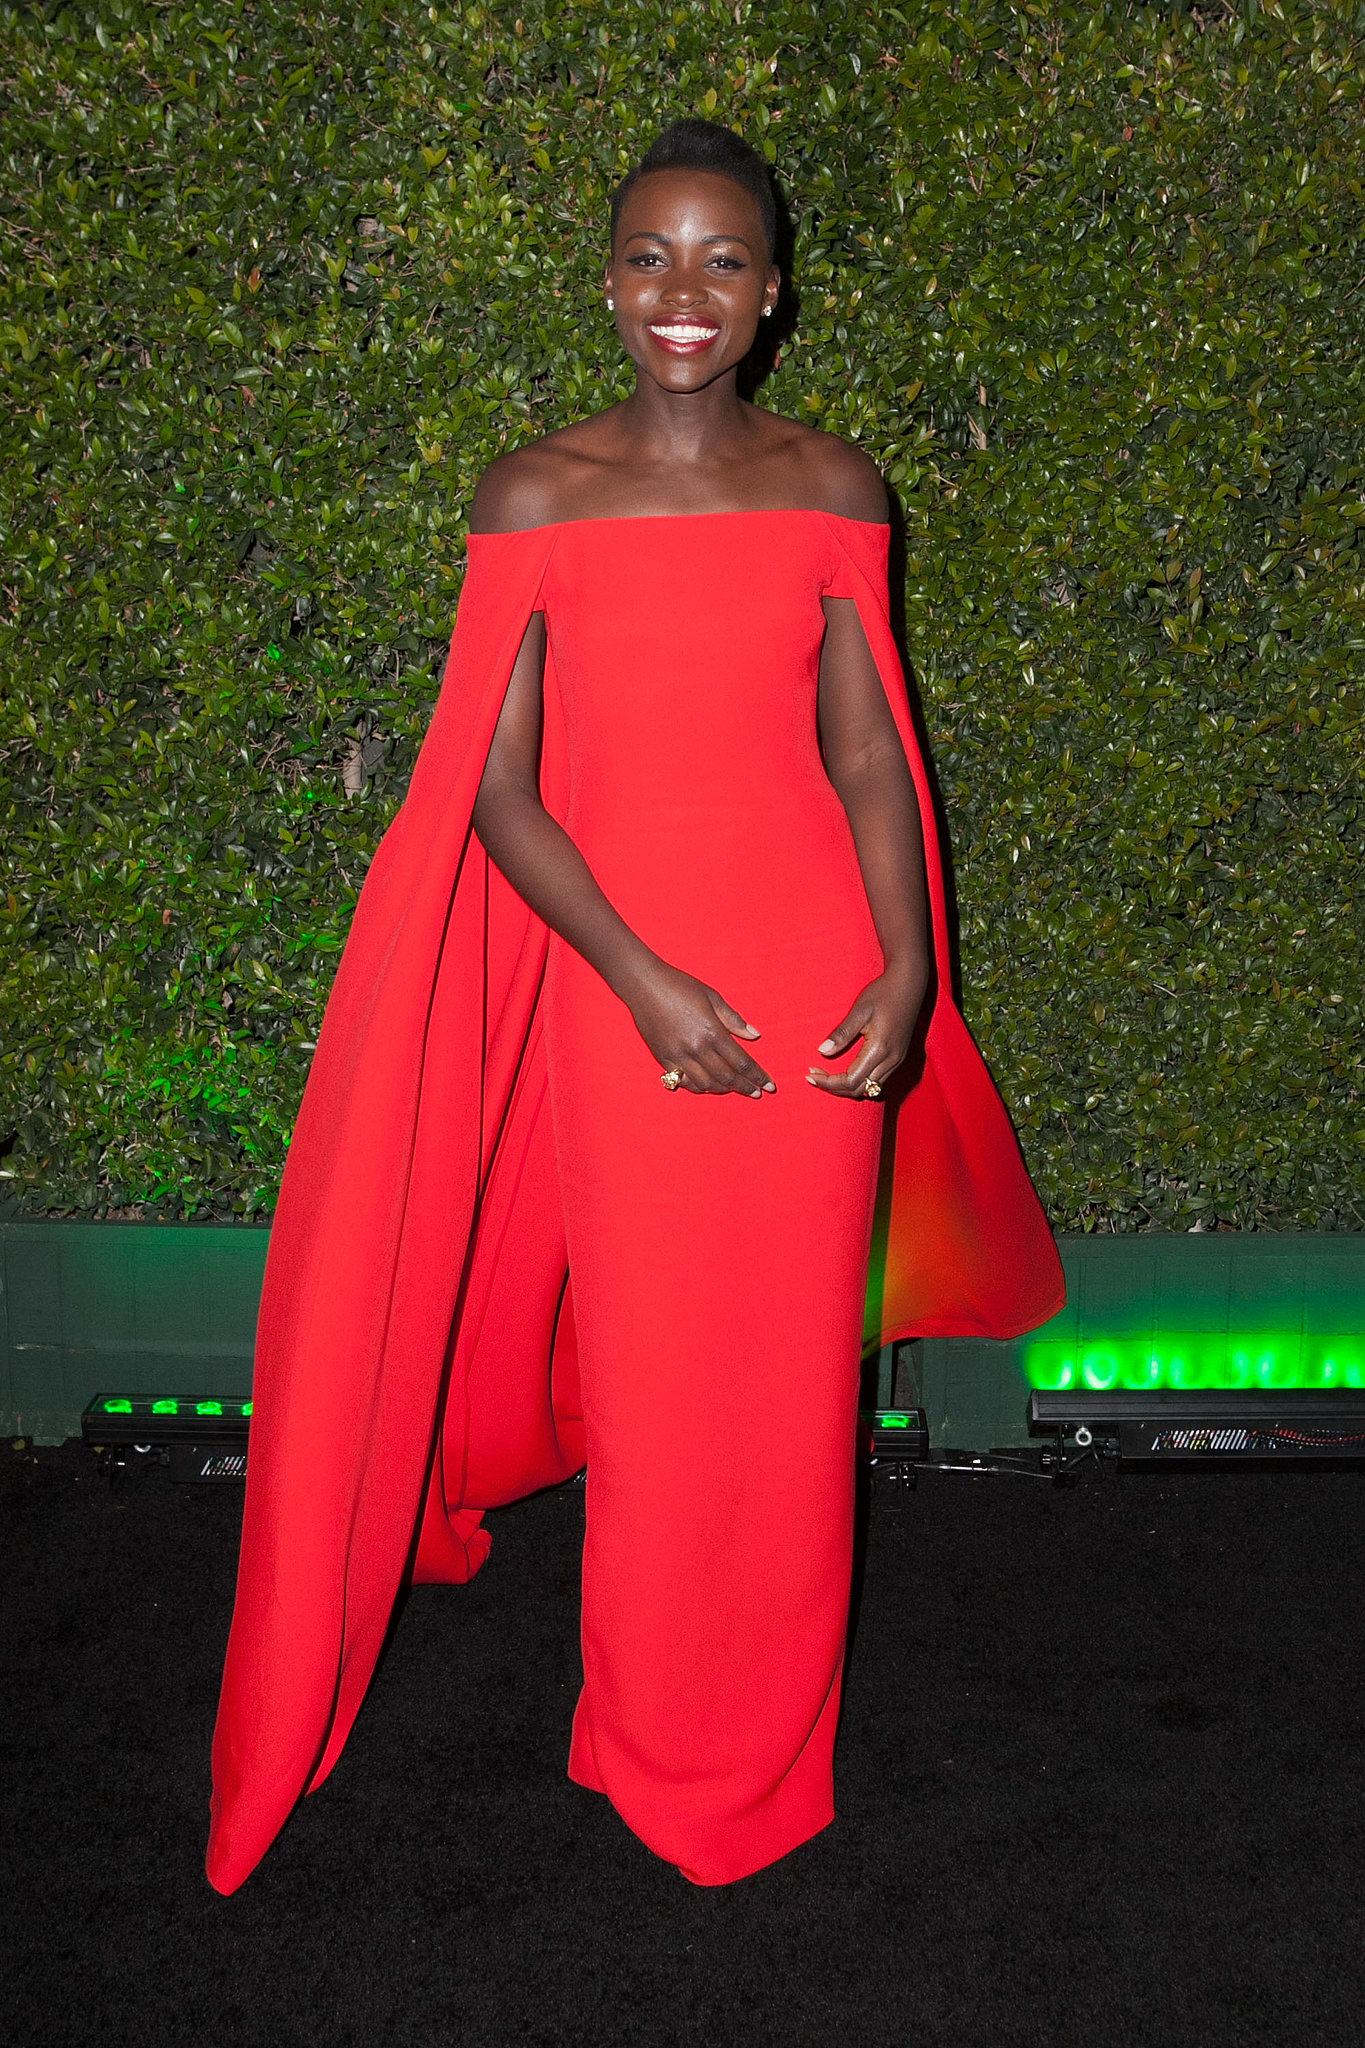 12 Years a Slave's Lupita Nyong'o stunned again at this party.